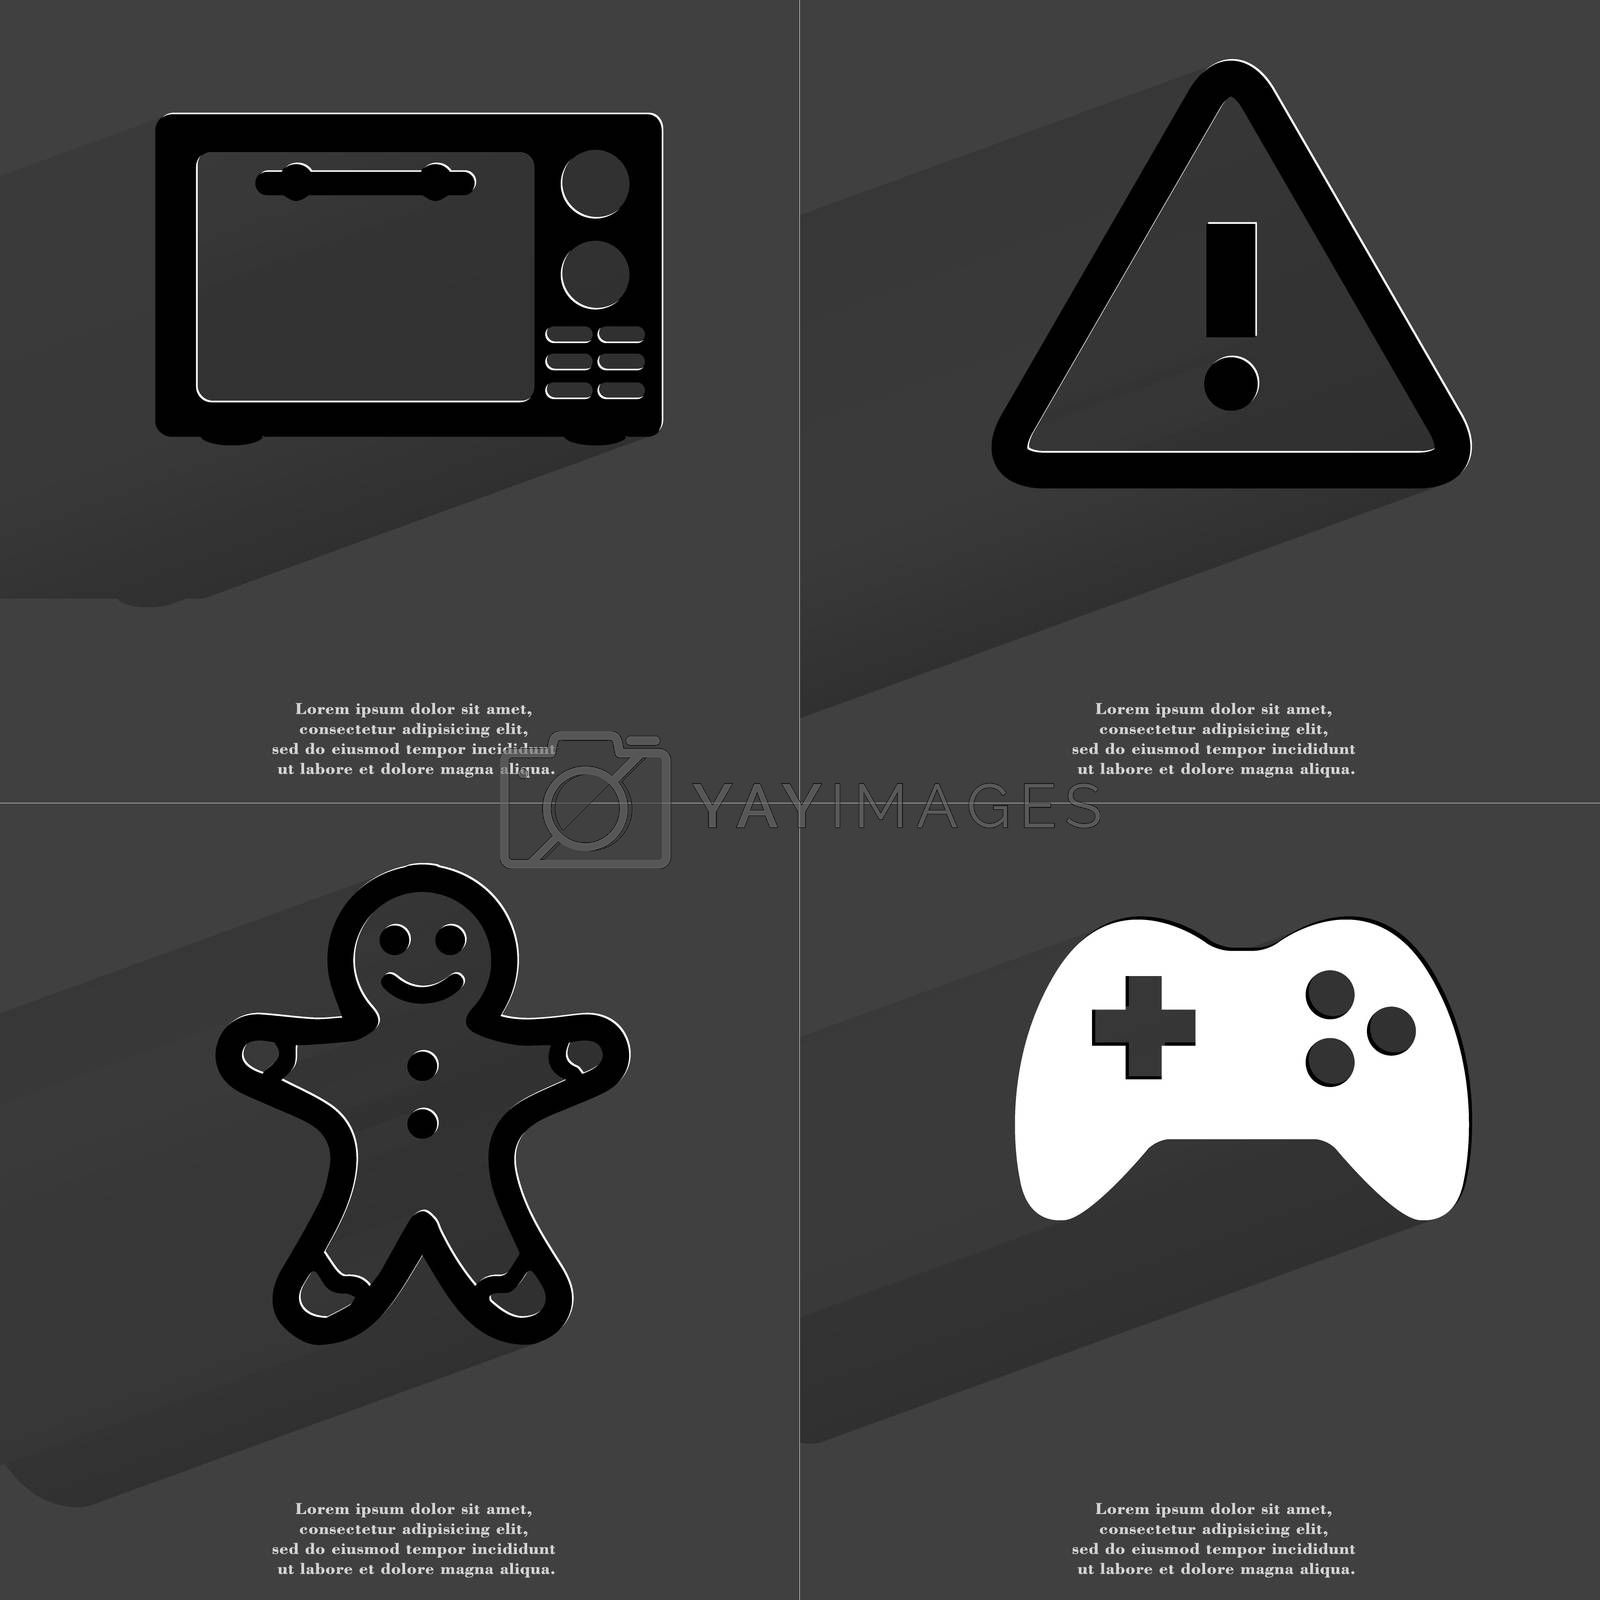 Royalty free image of Microwave, Information sign, Gingerbread man, Gamepad. Symbols with long shadow. Flat design by serhii_lohvyniuk